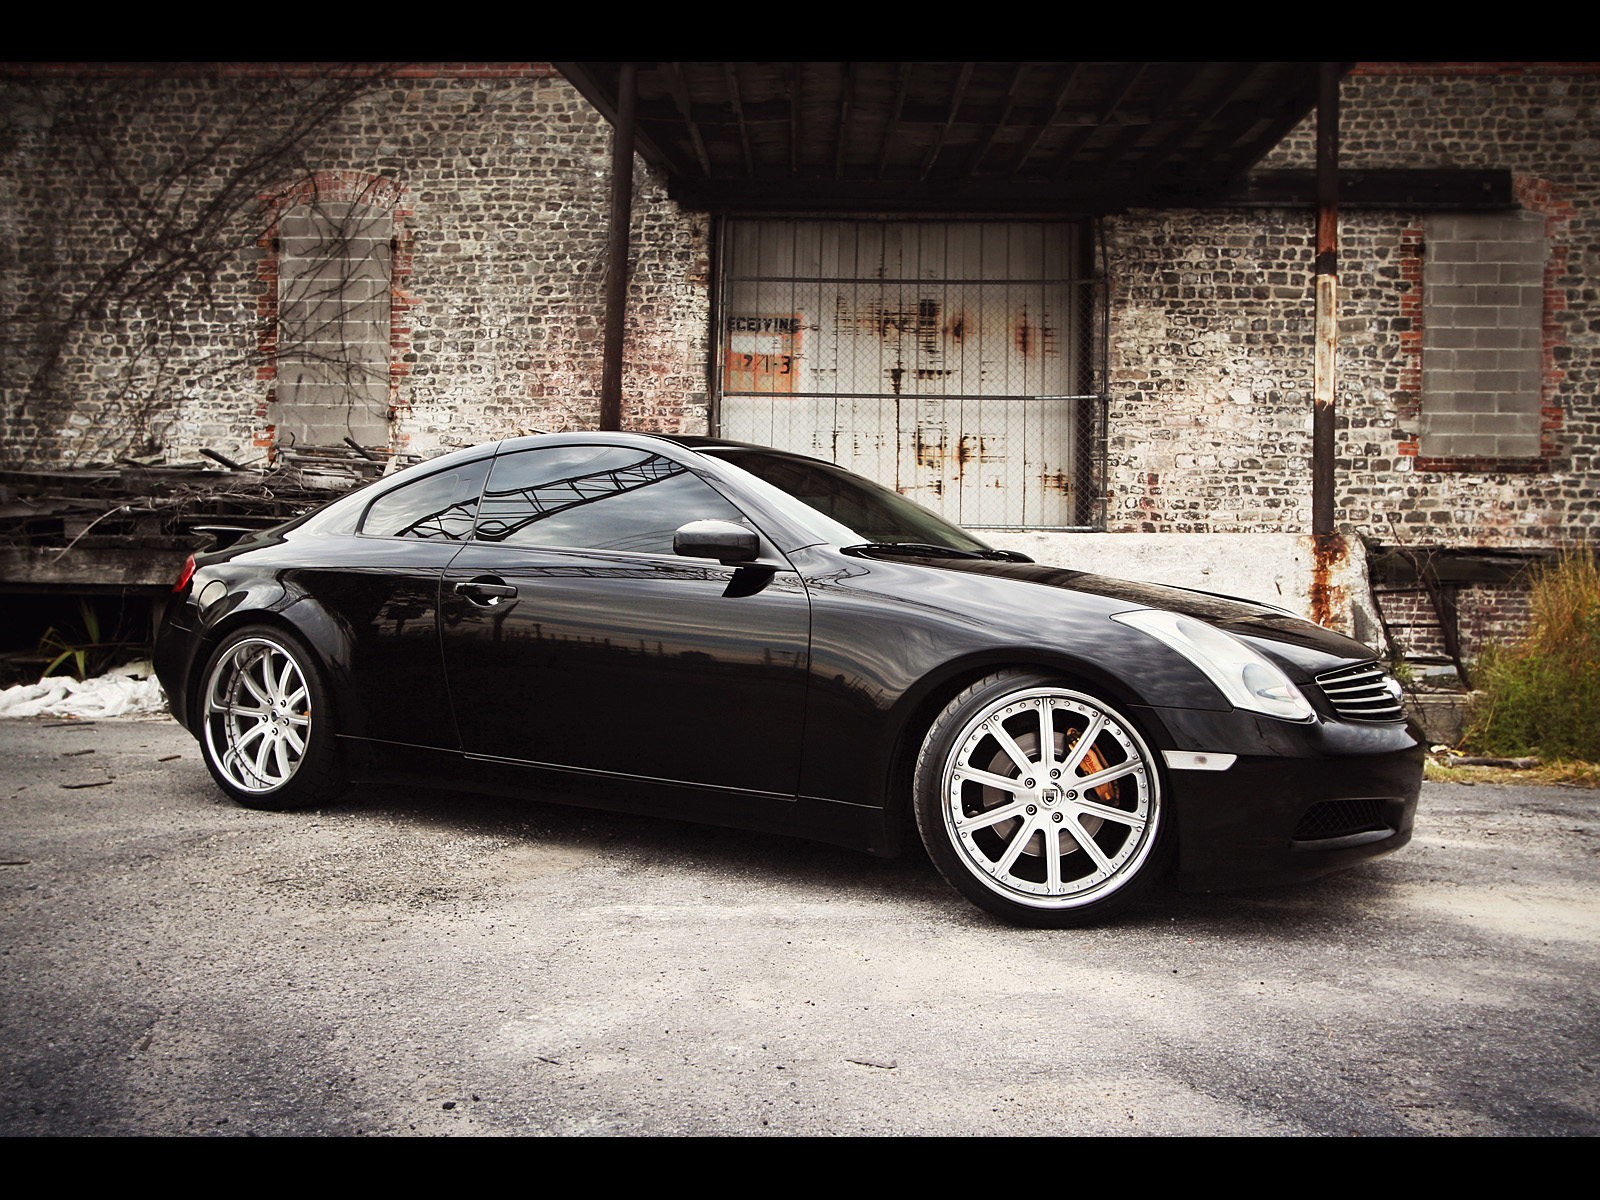 infiniti g35 sport coupe photos photogallery with 5 pics. Black Bedroom Furniture Sets. Home Design Ideas